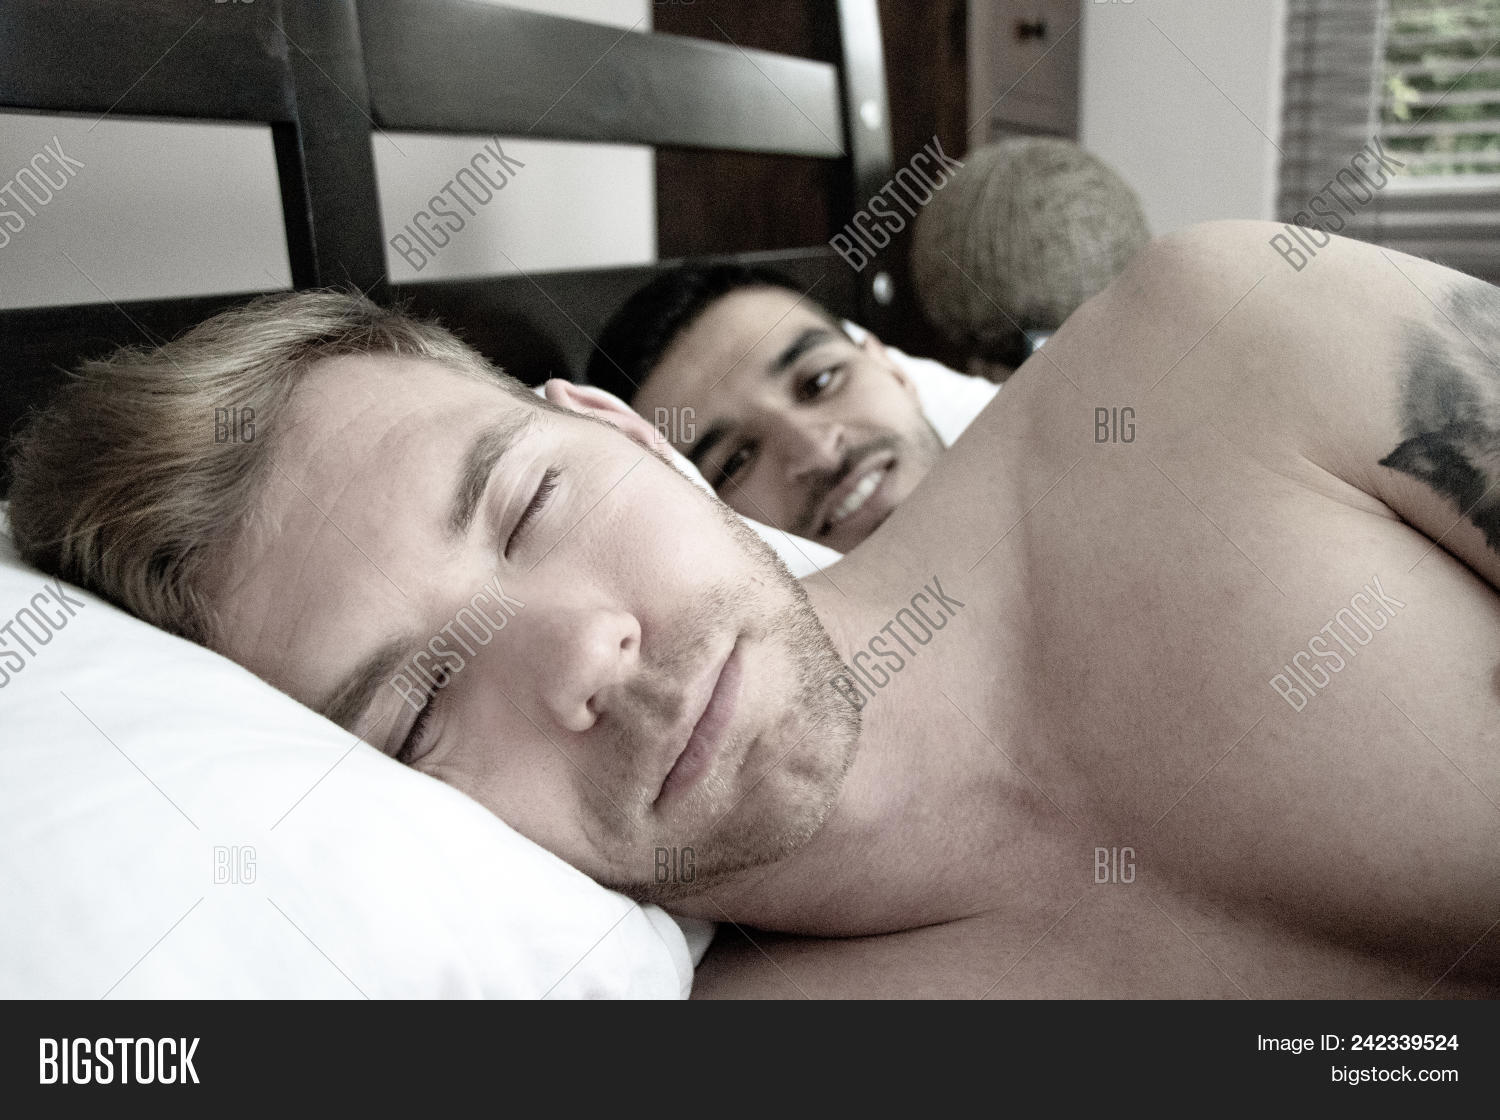 Two Handsome Gay Men In Bed Together One Is Sleeping As The Other Watches